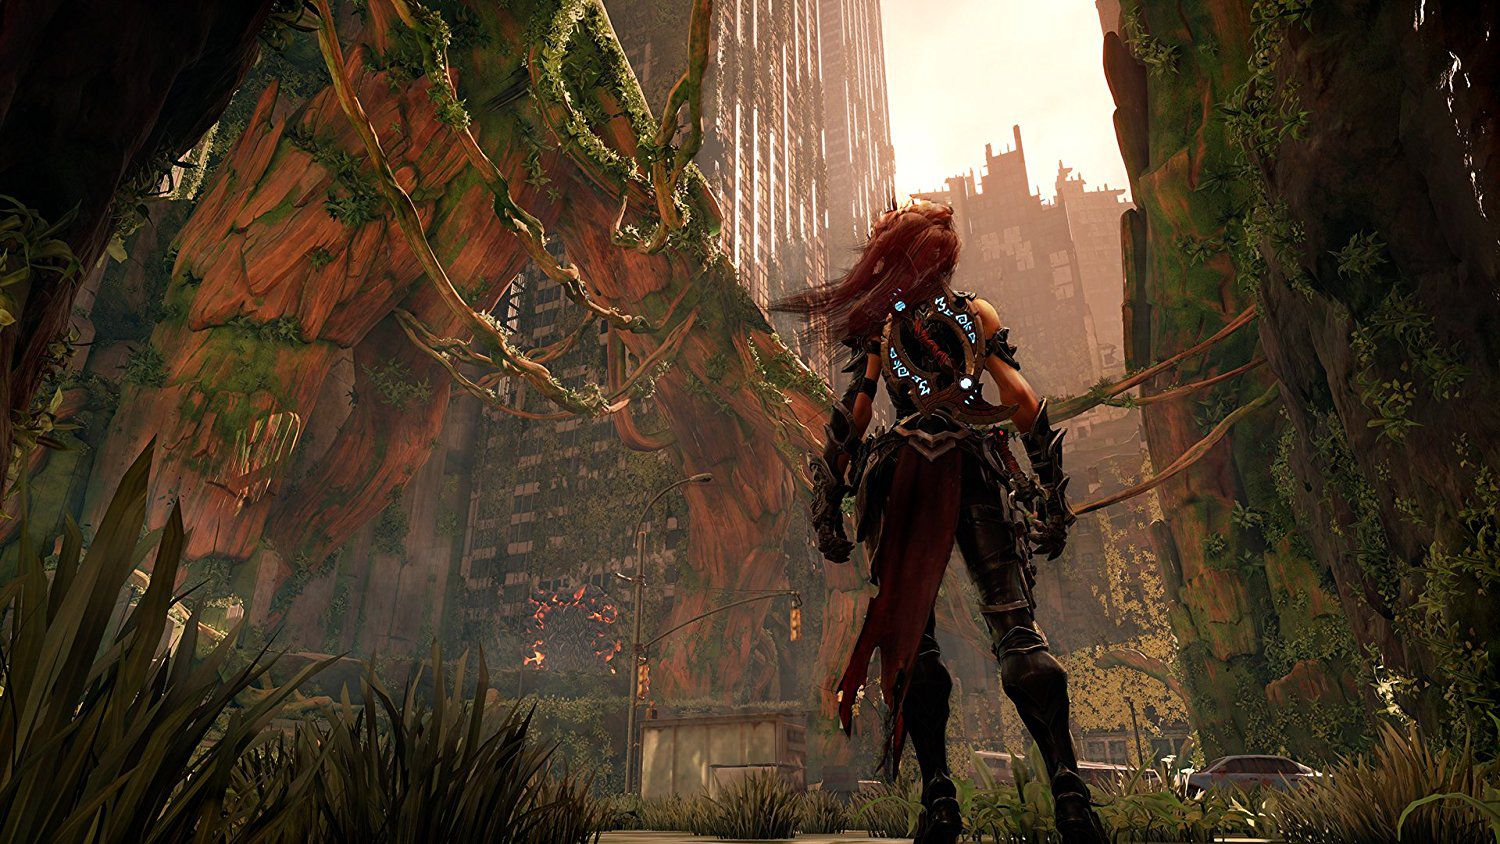 Darksiders III announcement trailer